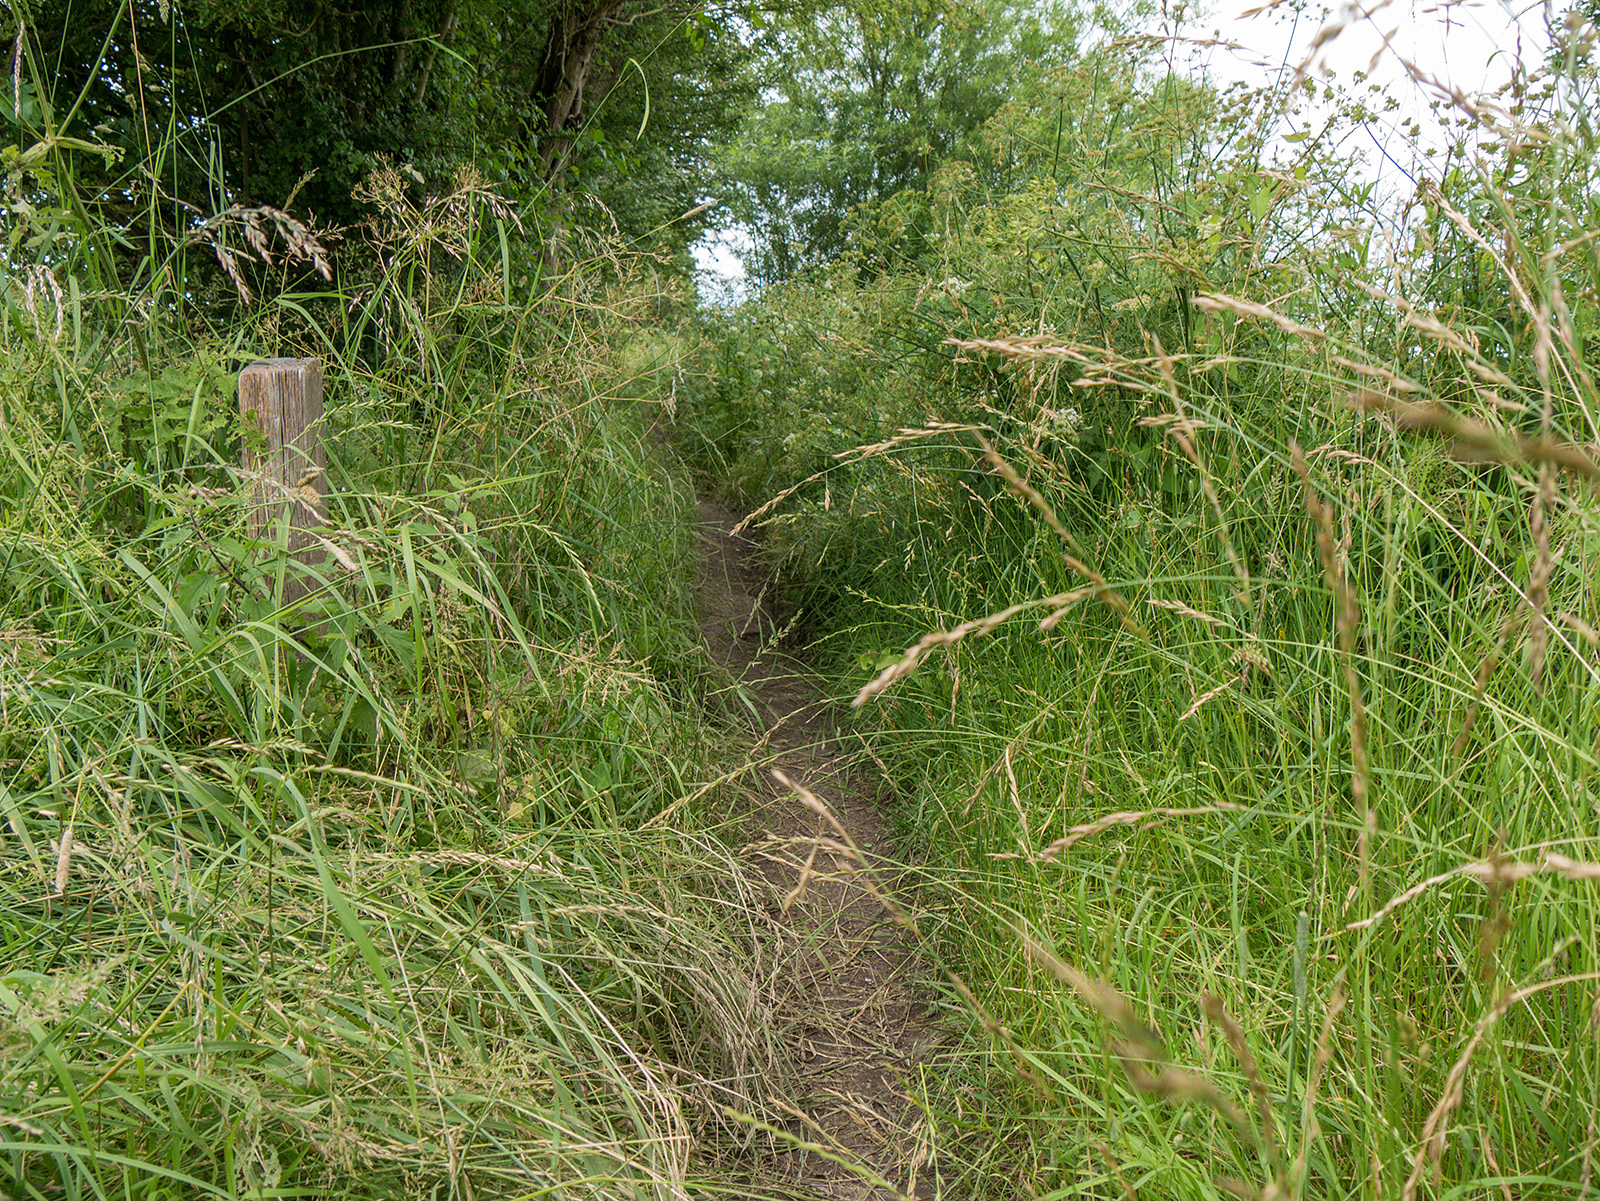 The path in many areas is overgrown by grasses both sides - in the rain that came later, these soaked the bottom of my trousers